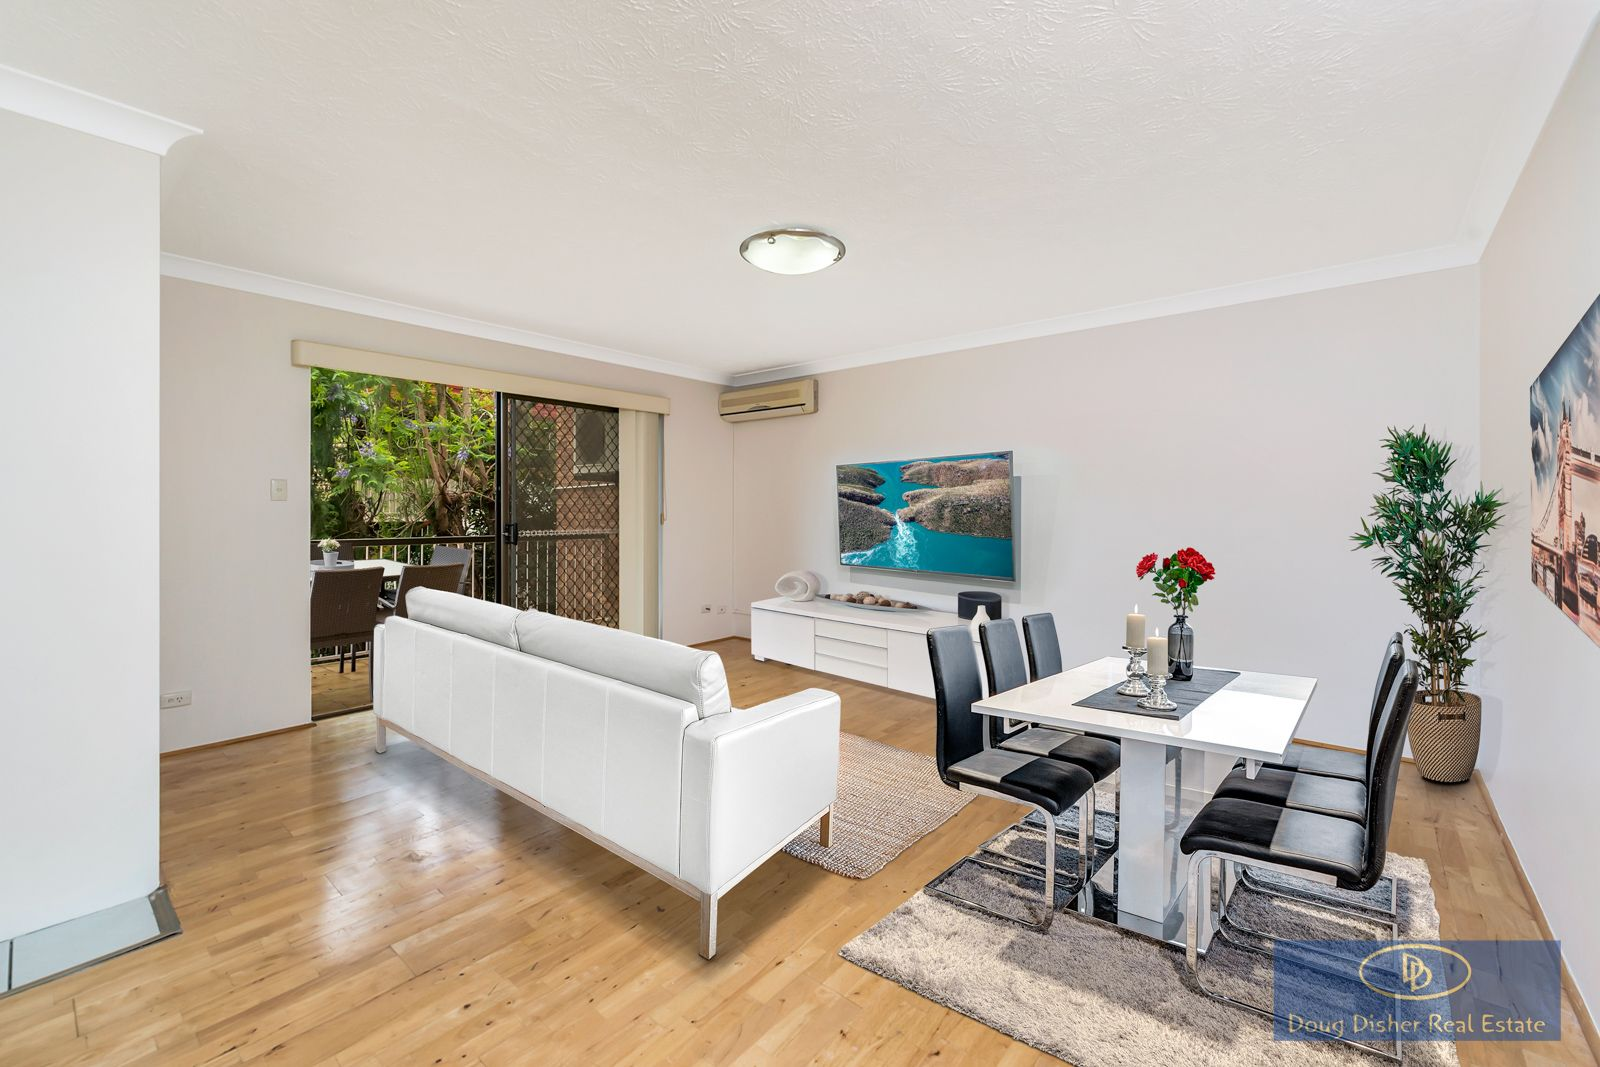 2/48 Maryvale Street, Toowong QLD 4066, Image 0